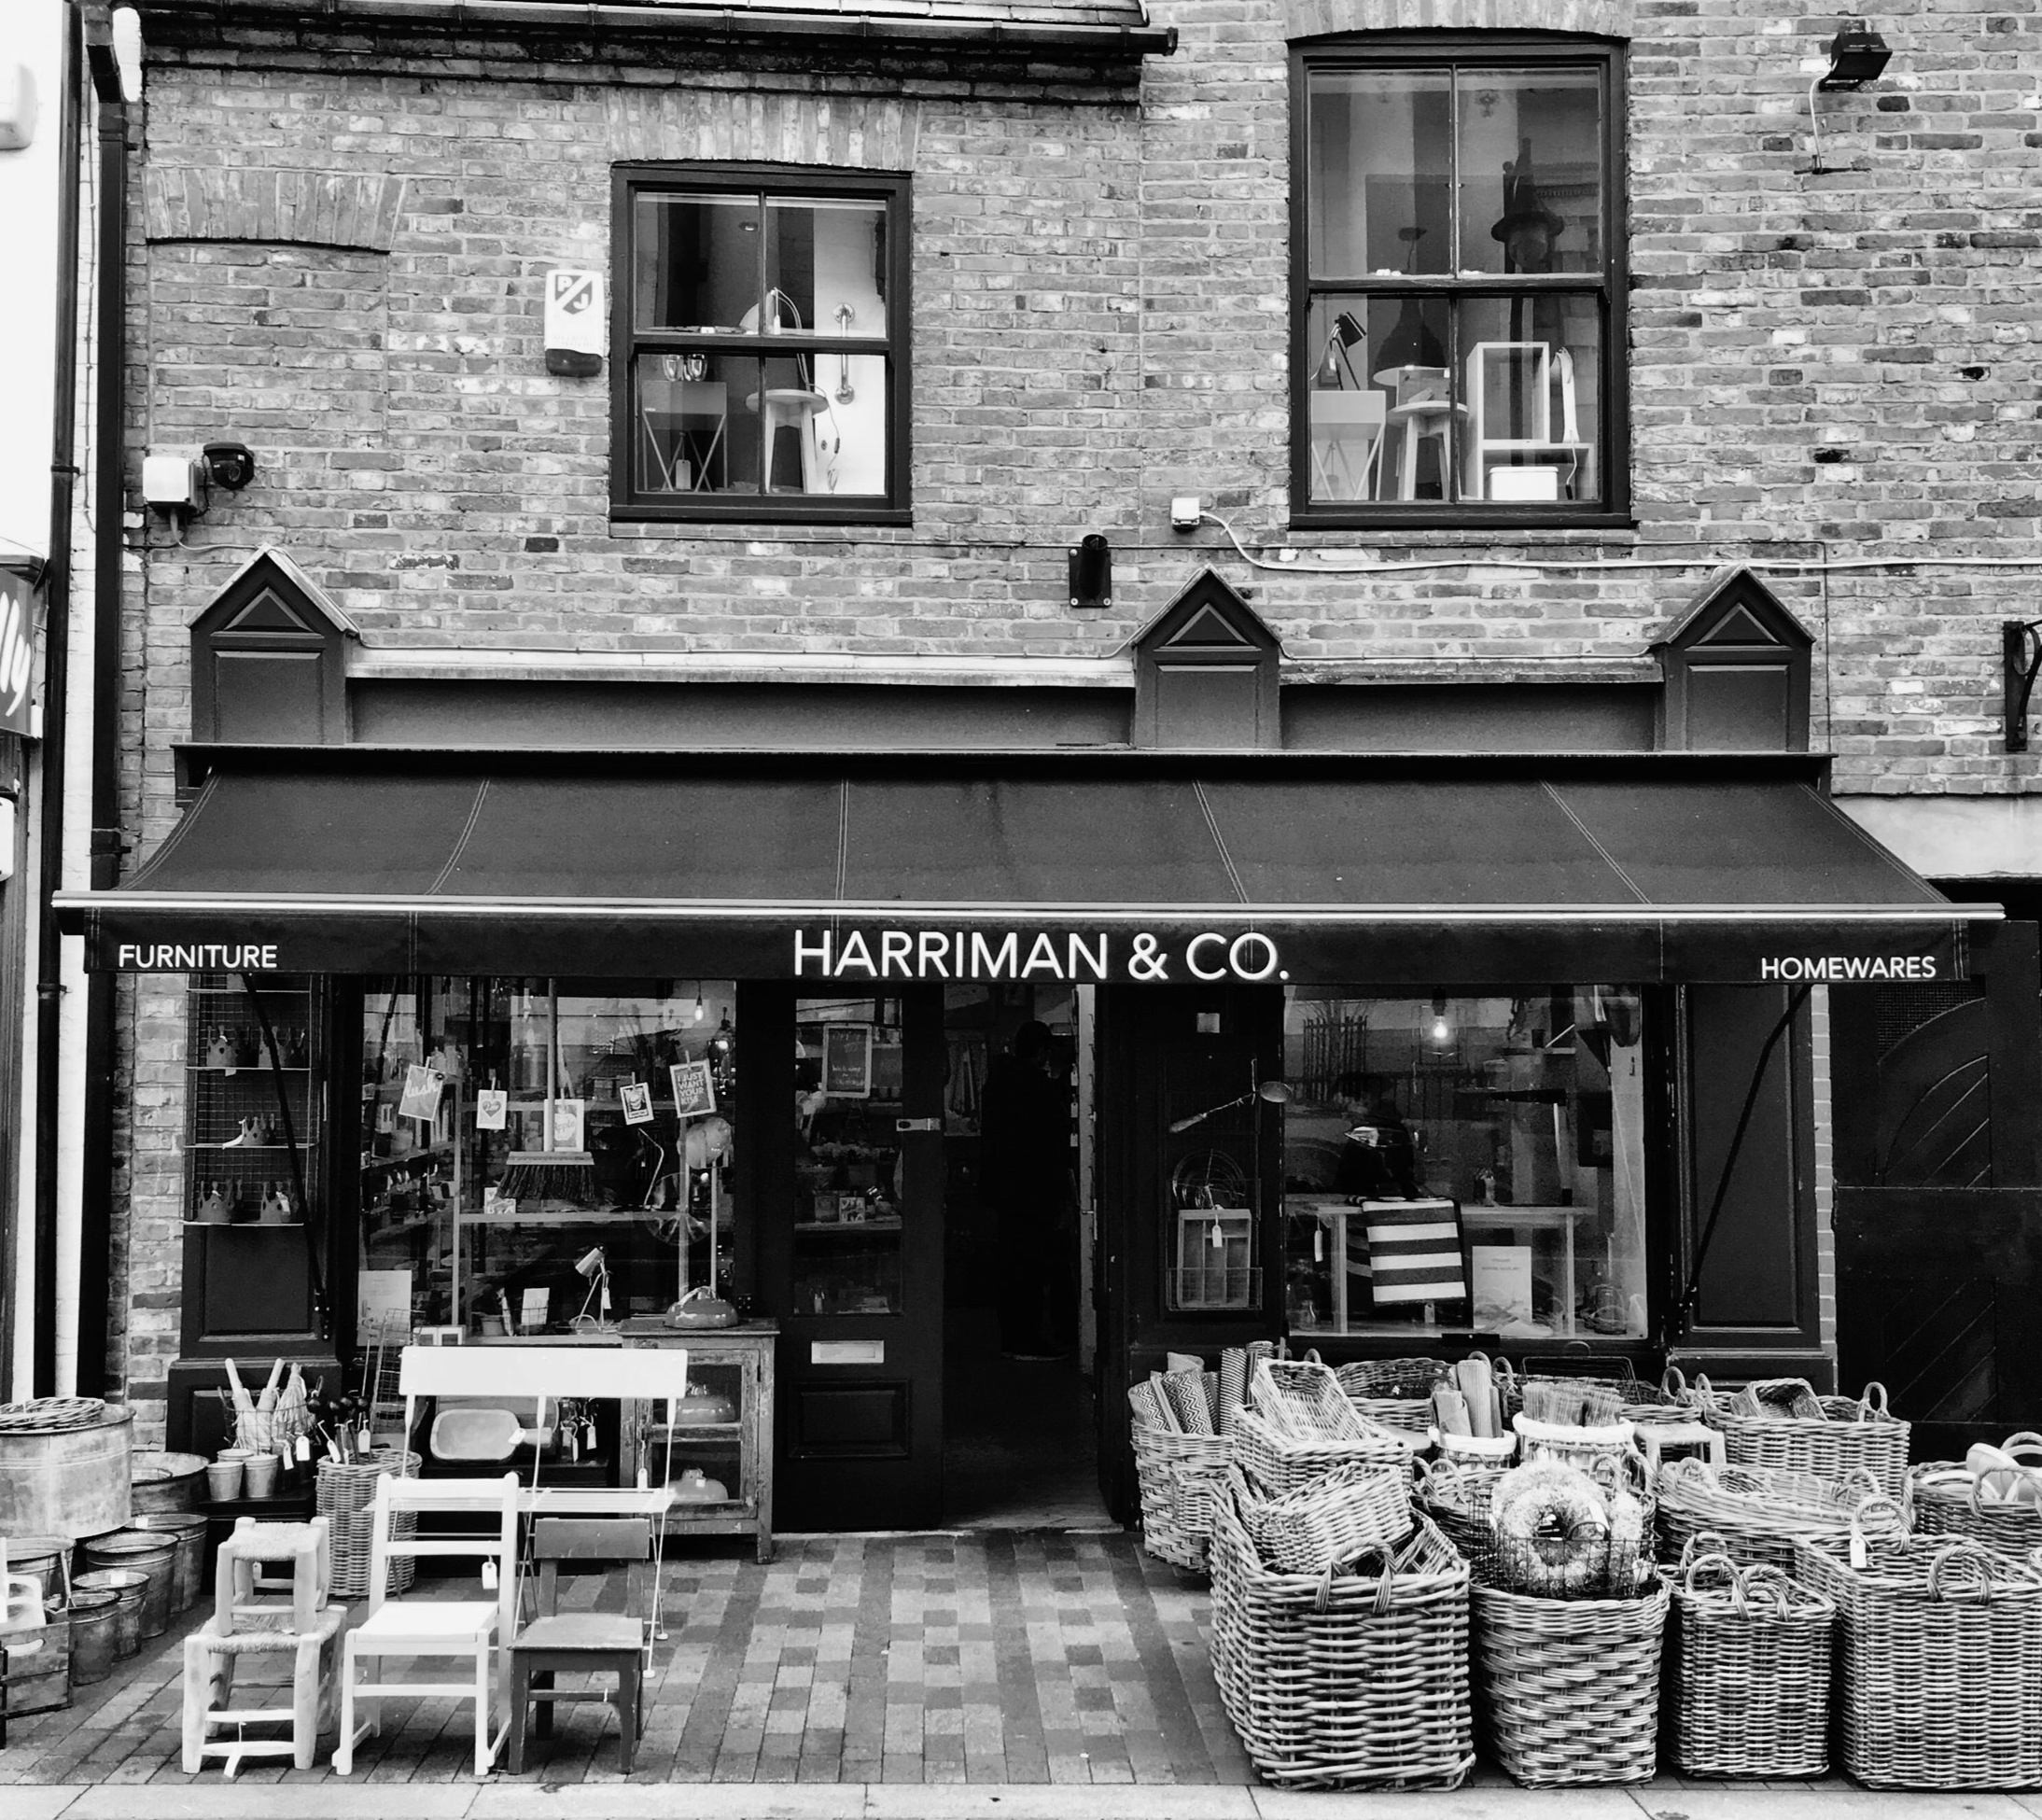 Shop front at 11 St. Martins Leicester